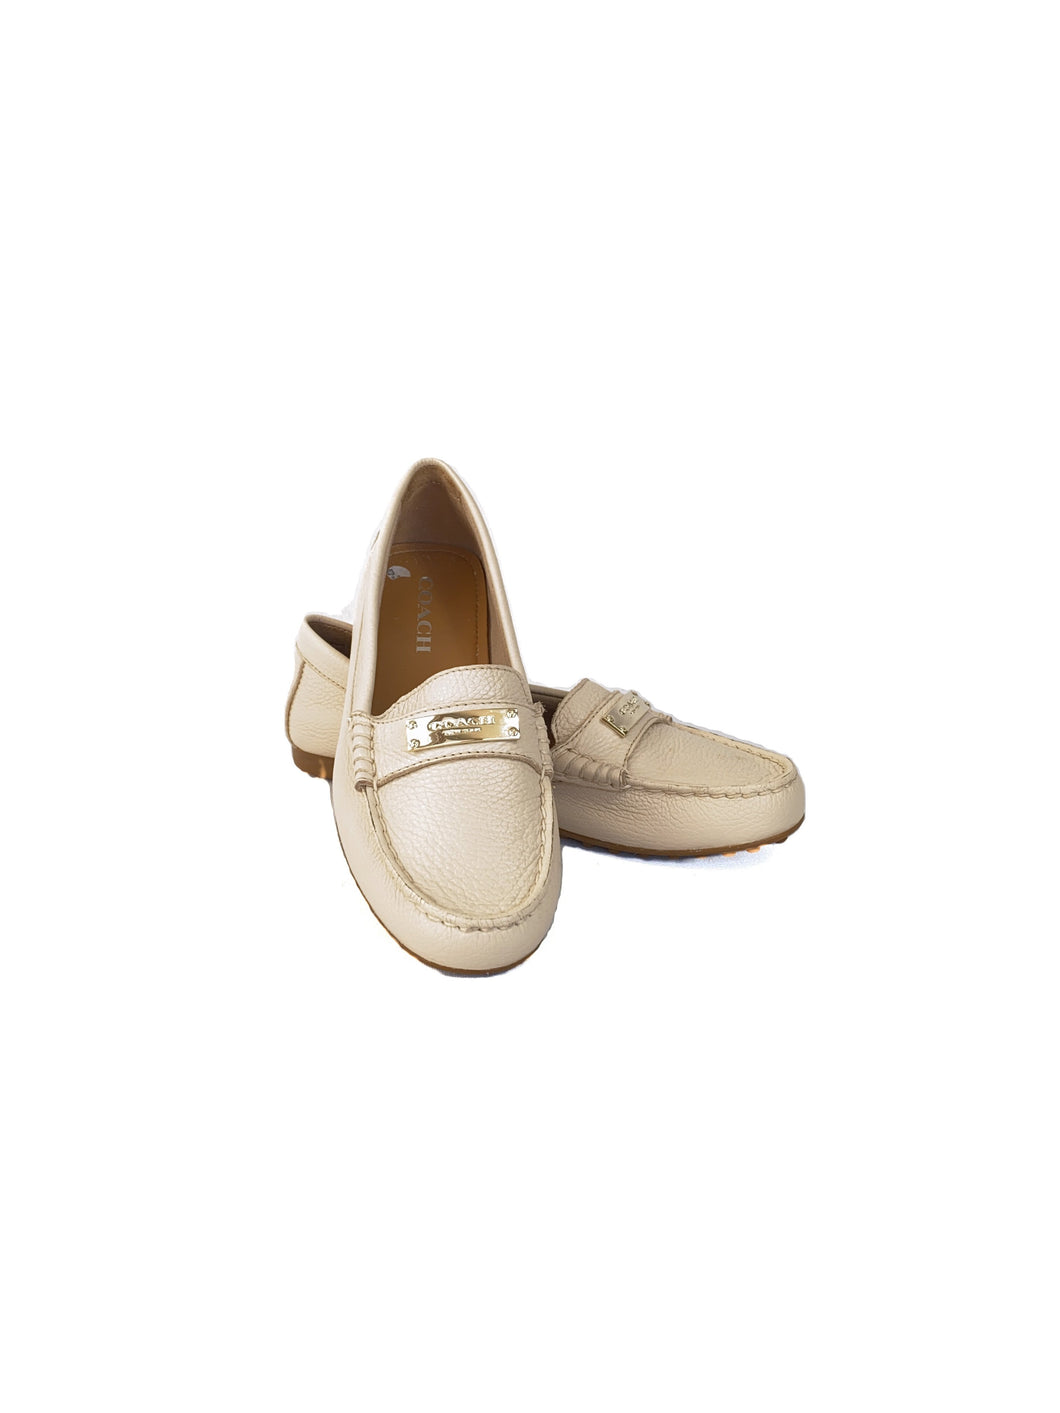 Coach cream leather loafers size 6.5